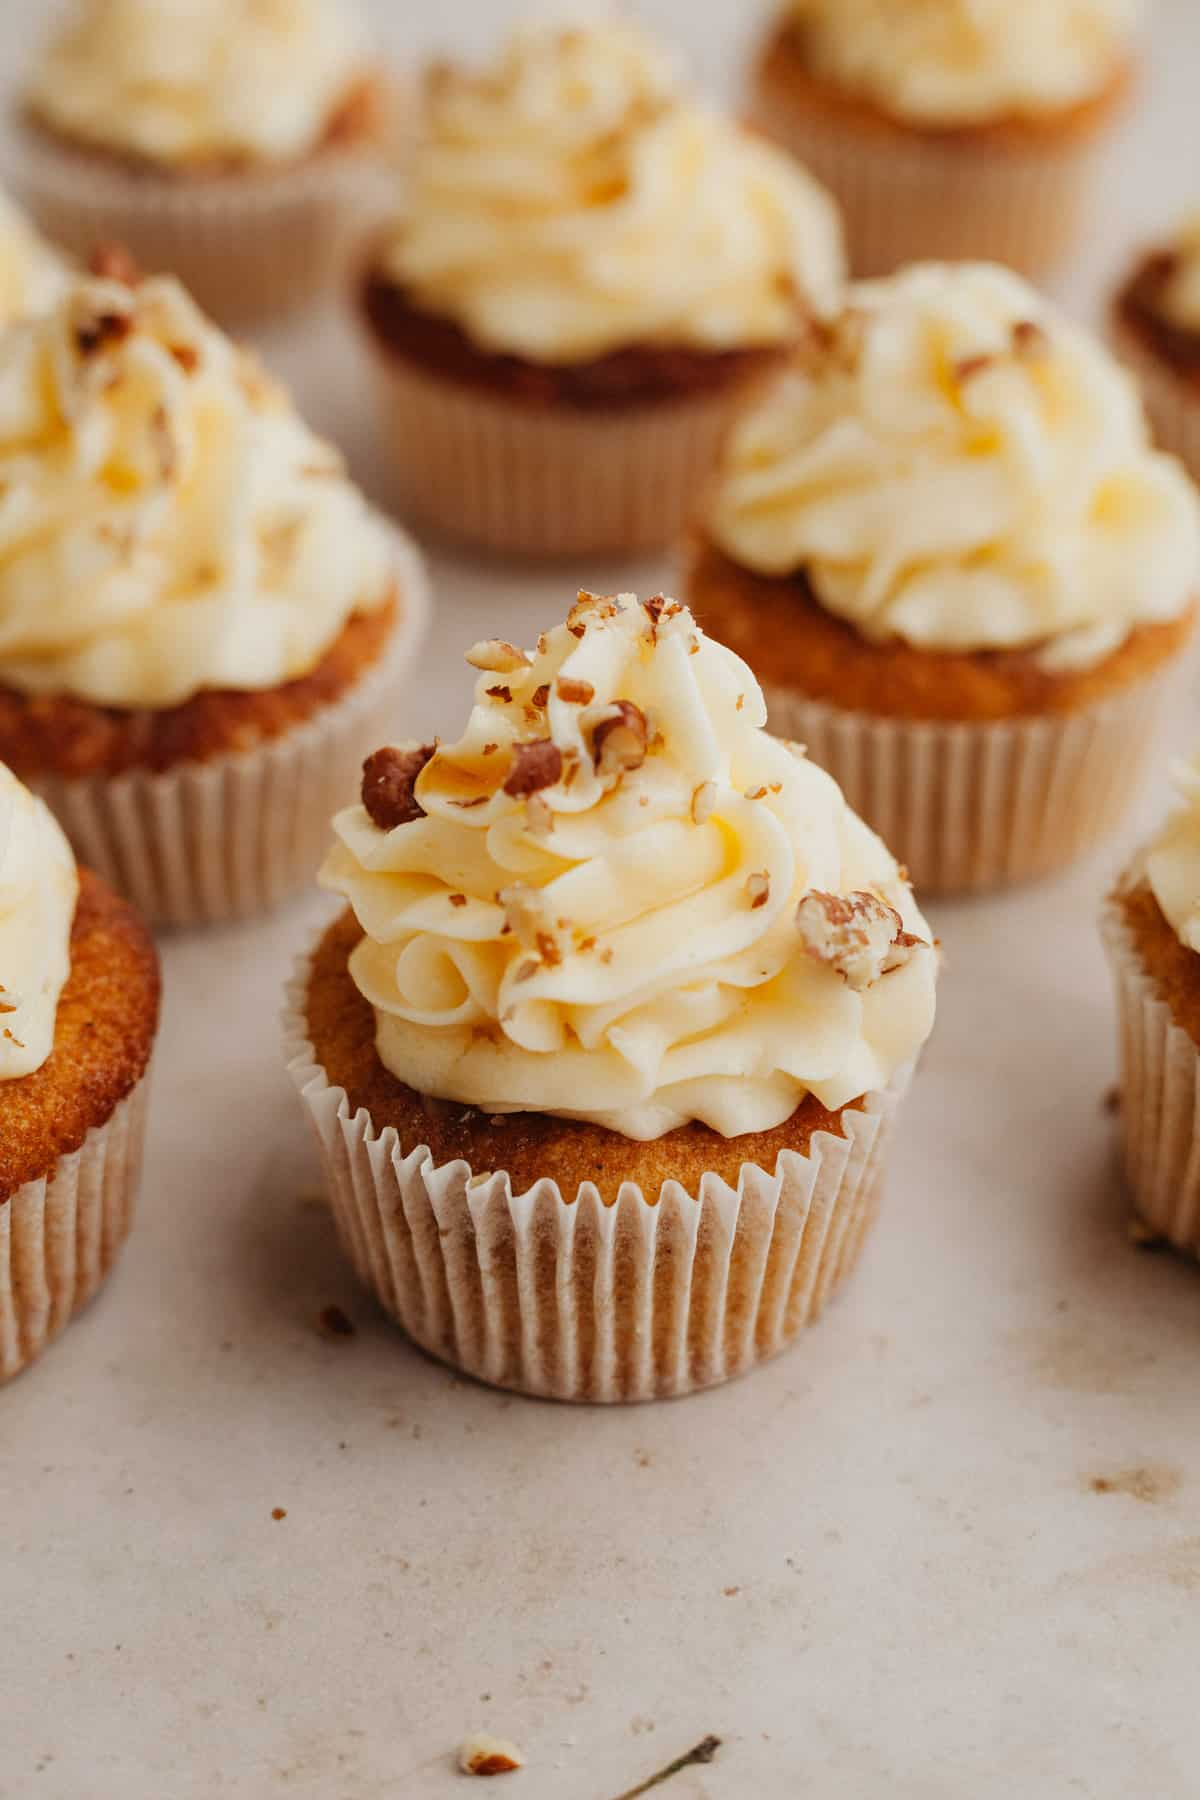 Several maple cupcakes with frosting on top